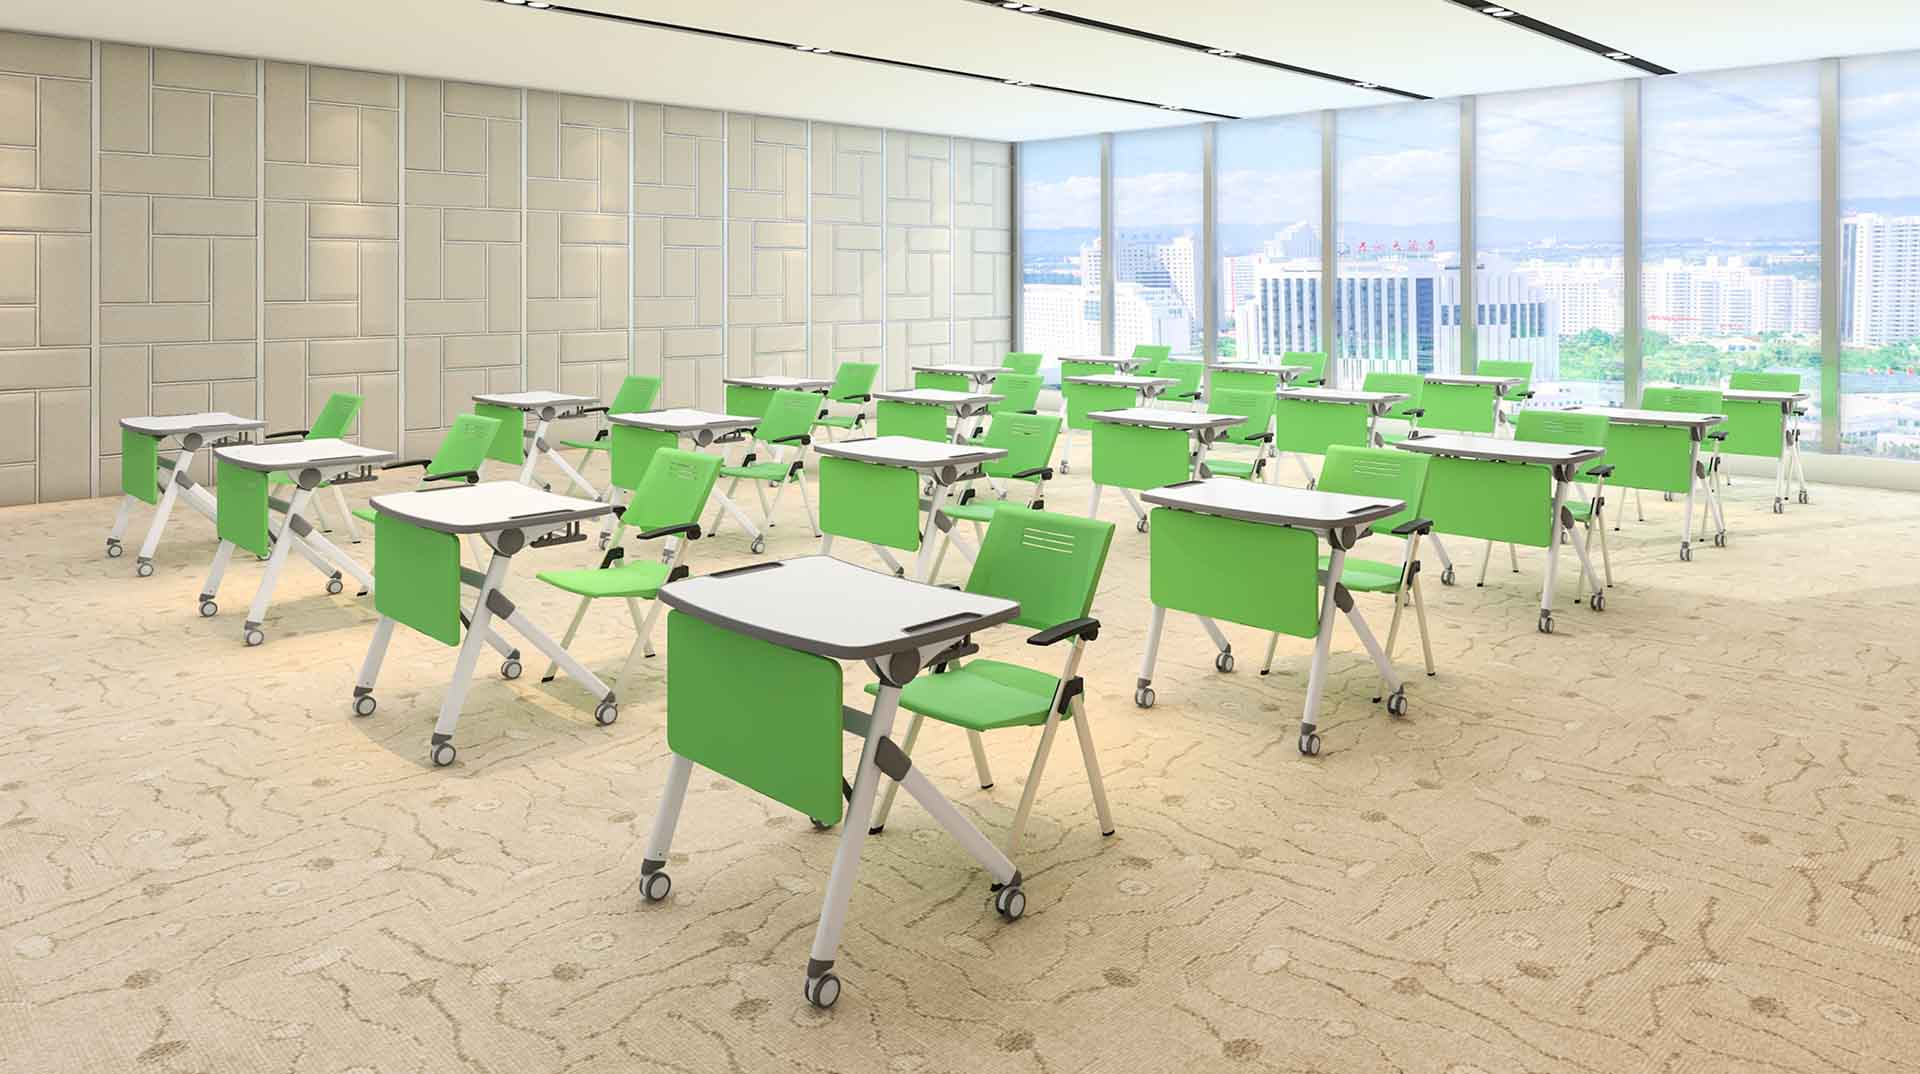 folding folding school desk school on wheels for meeting rooms-8